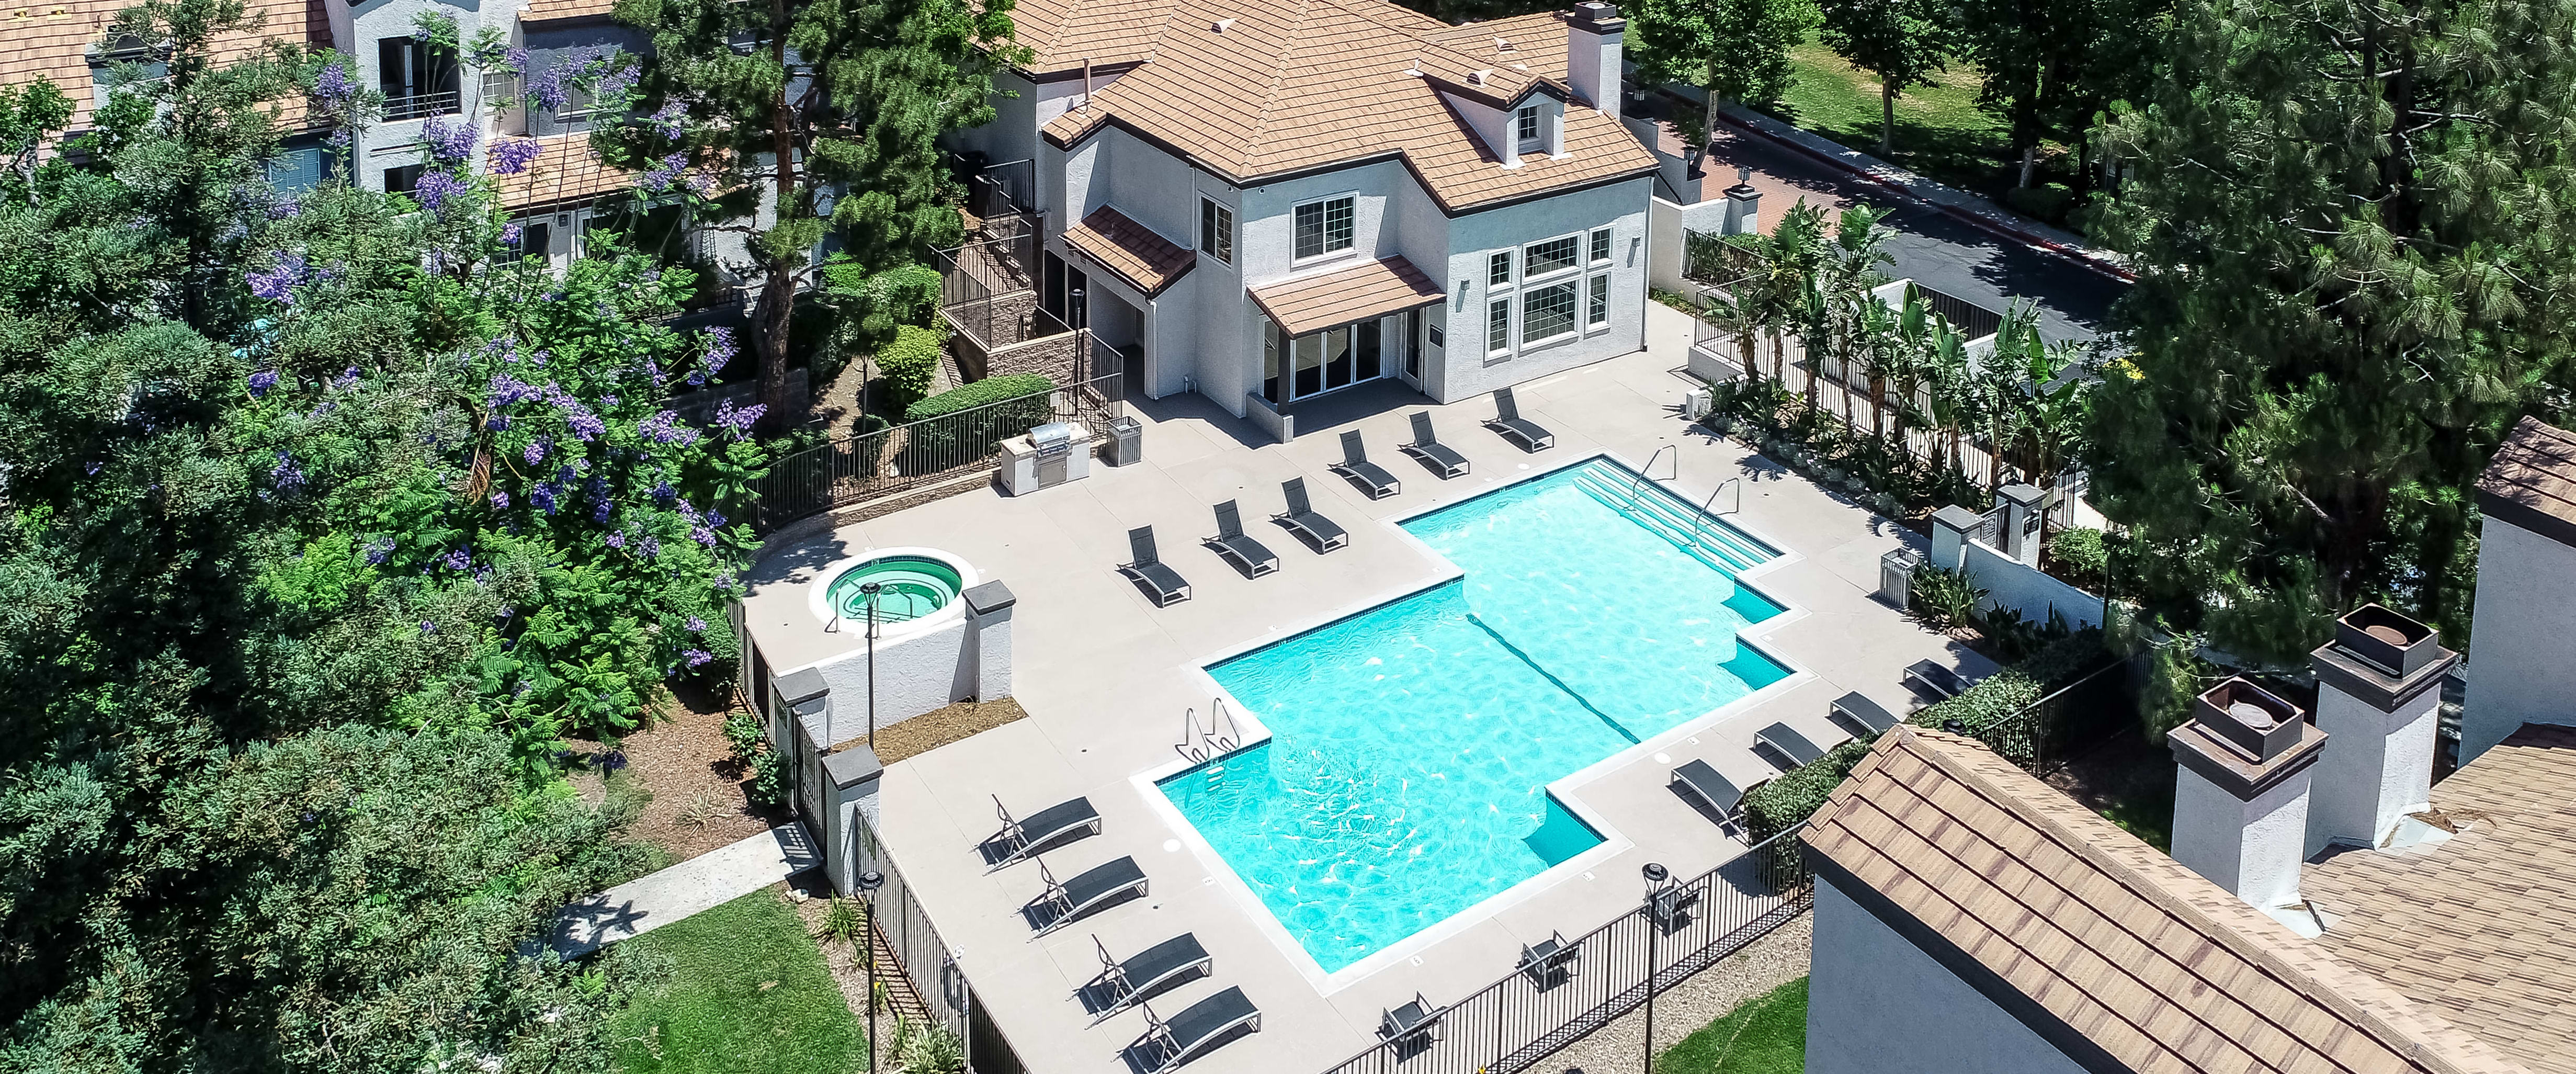 Photos of Sierra Heights Apartments featuring beautiful landscaping in Rancho Cucamonga, California